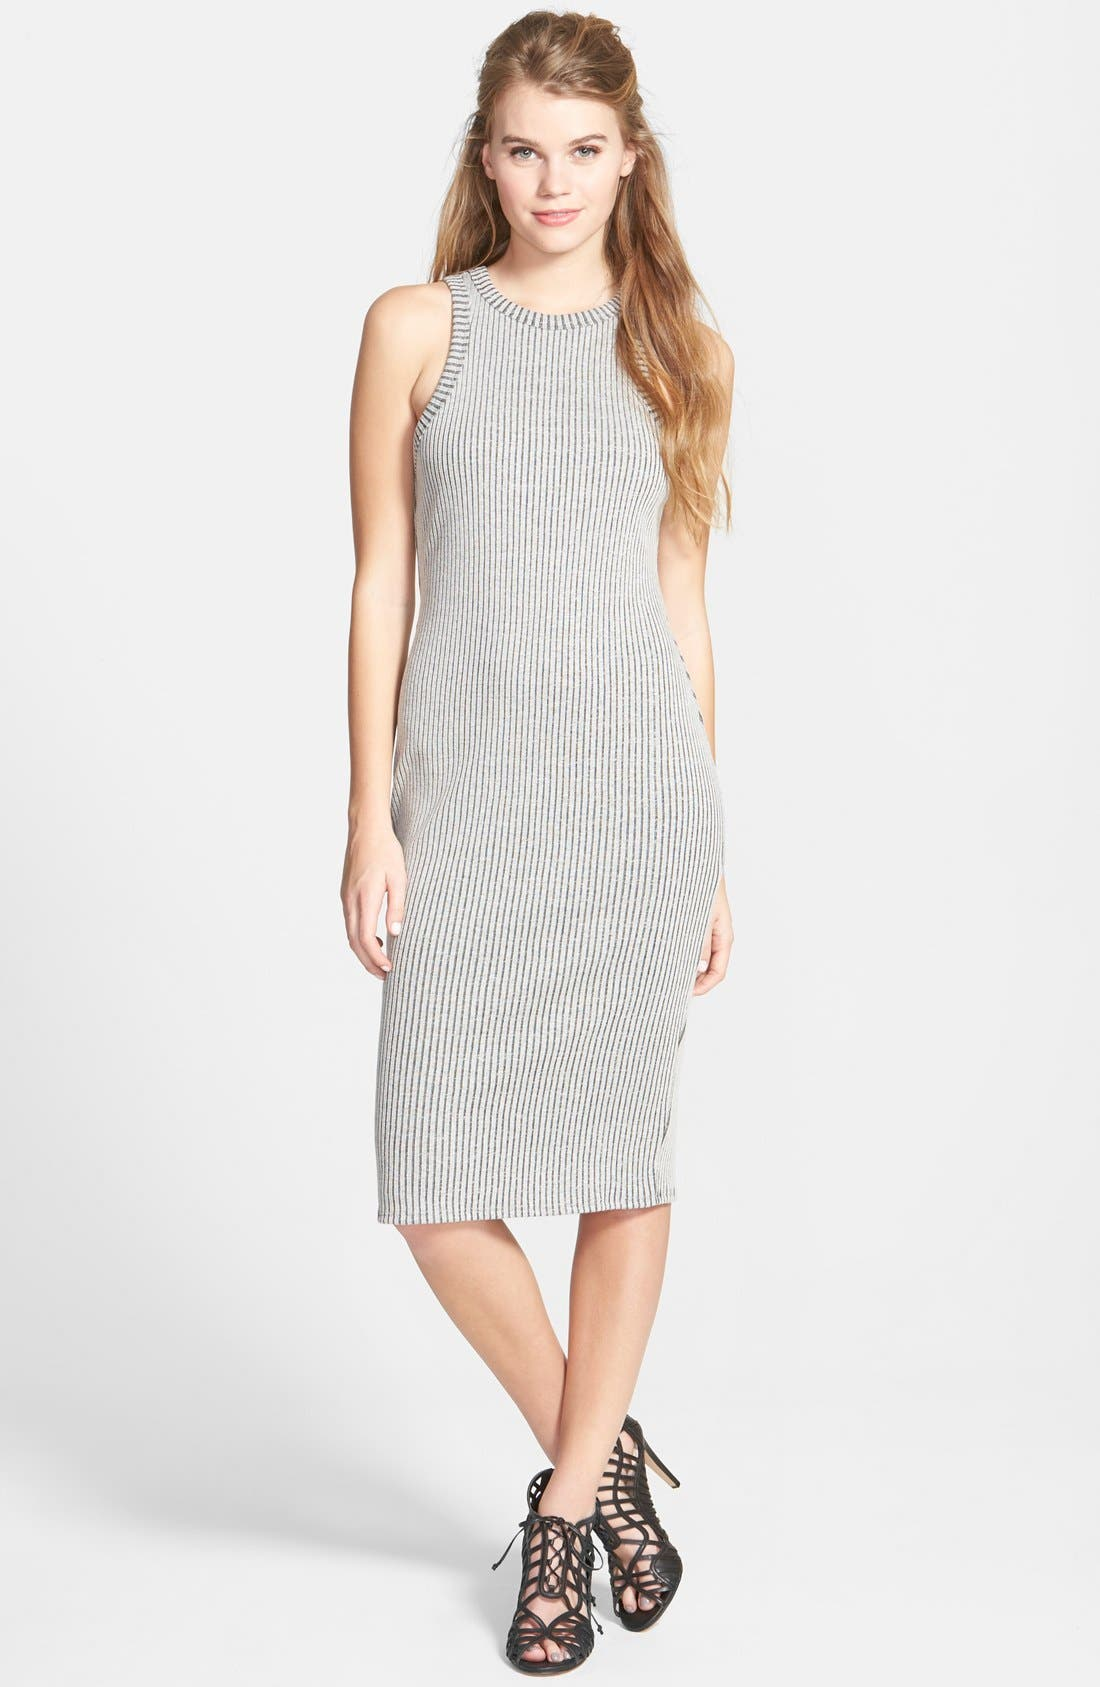 Alternate Image 1 Selected - One Clothing Rib Knit Body-Con Midi Dress (Juniors)